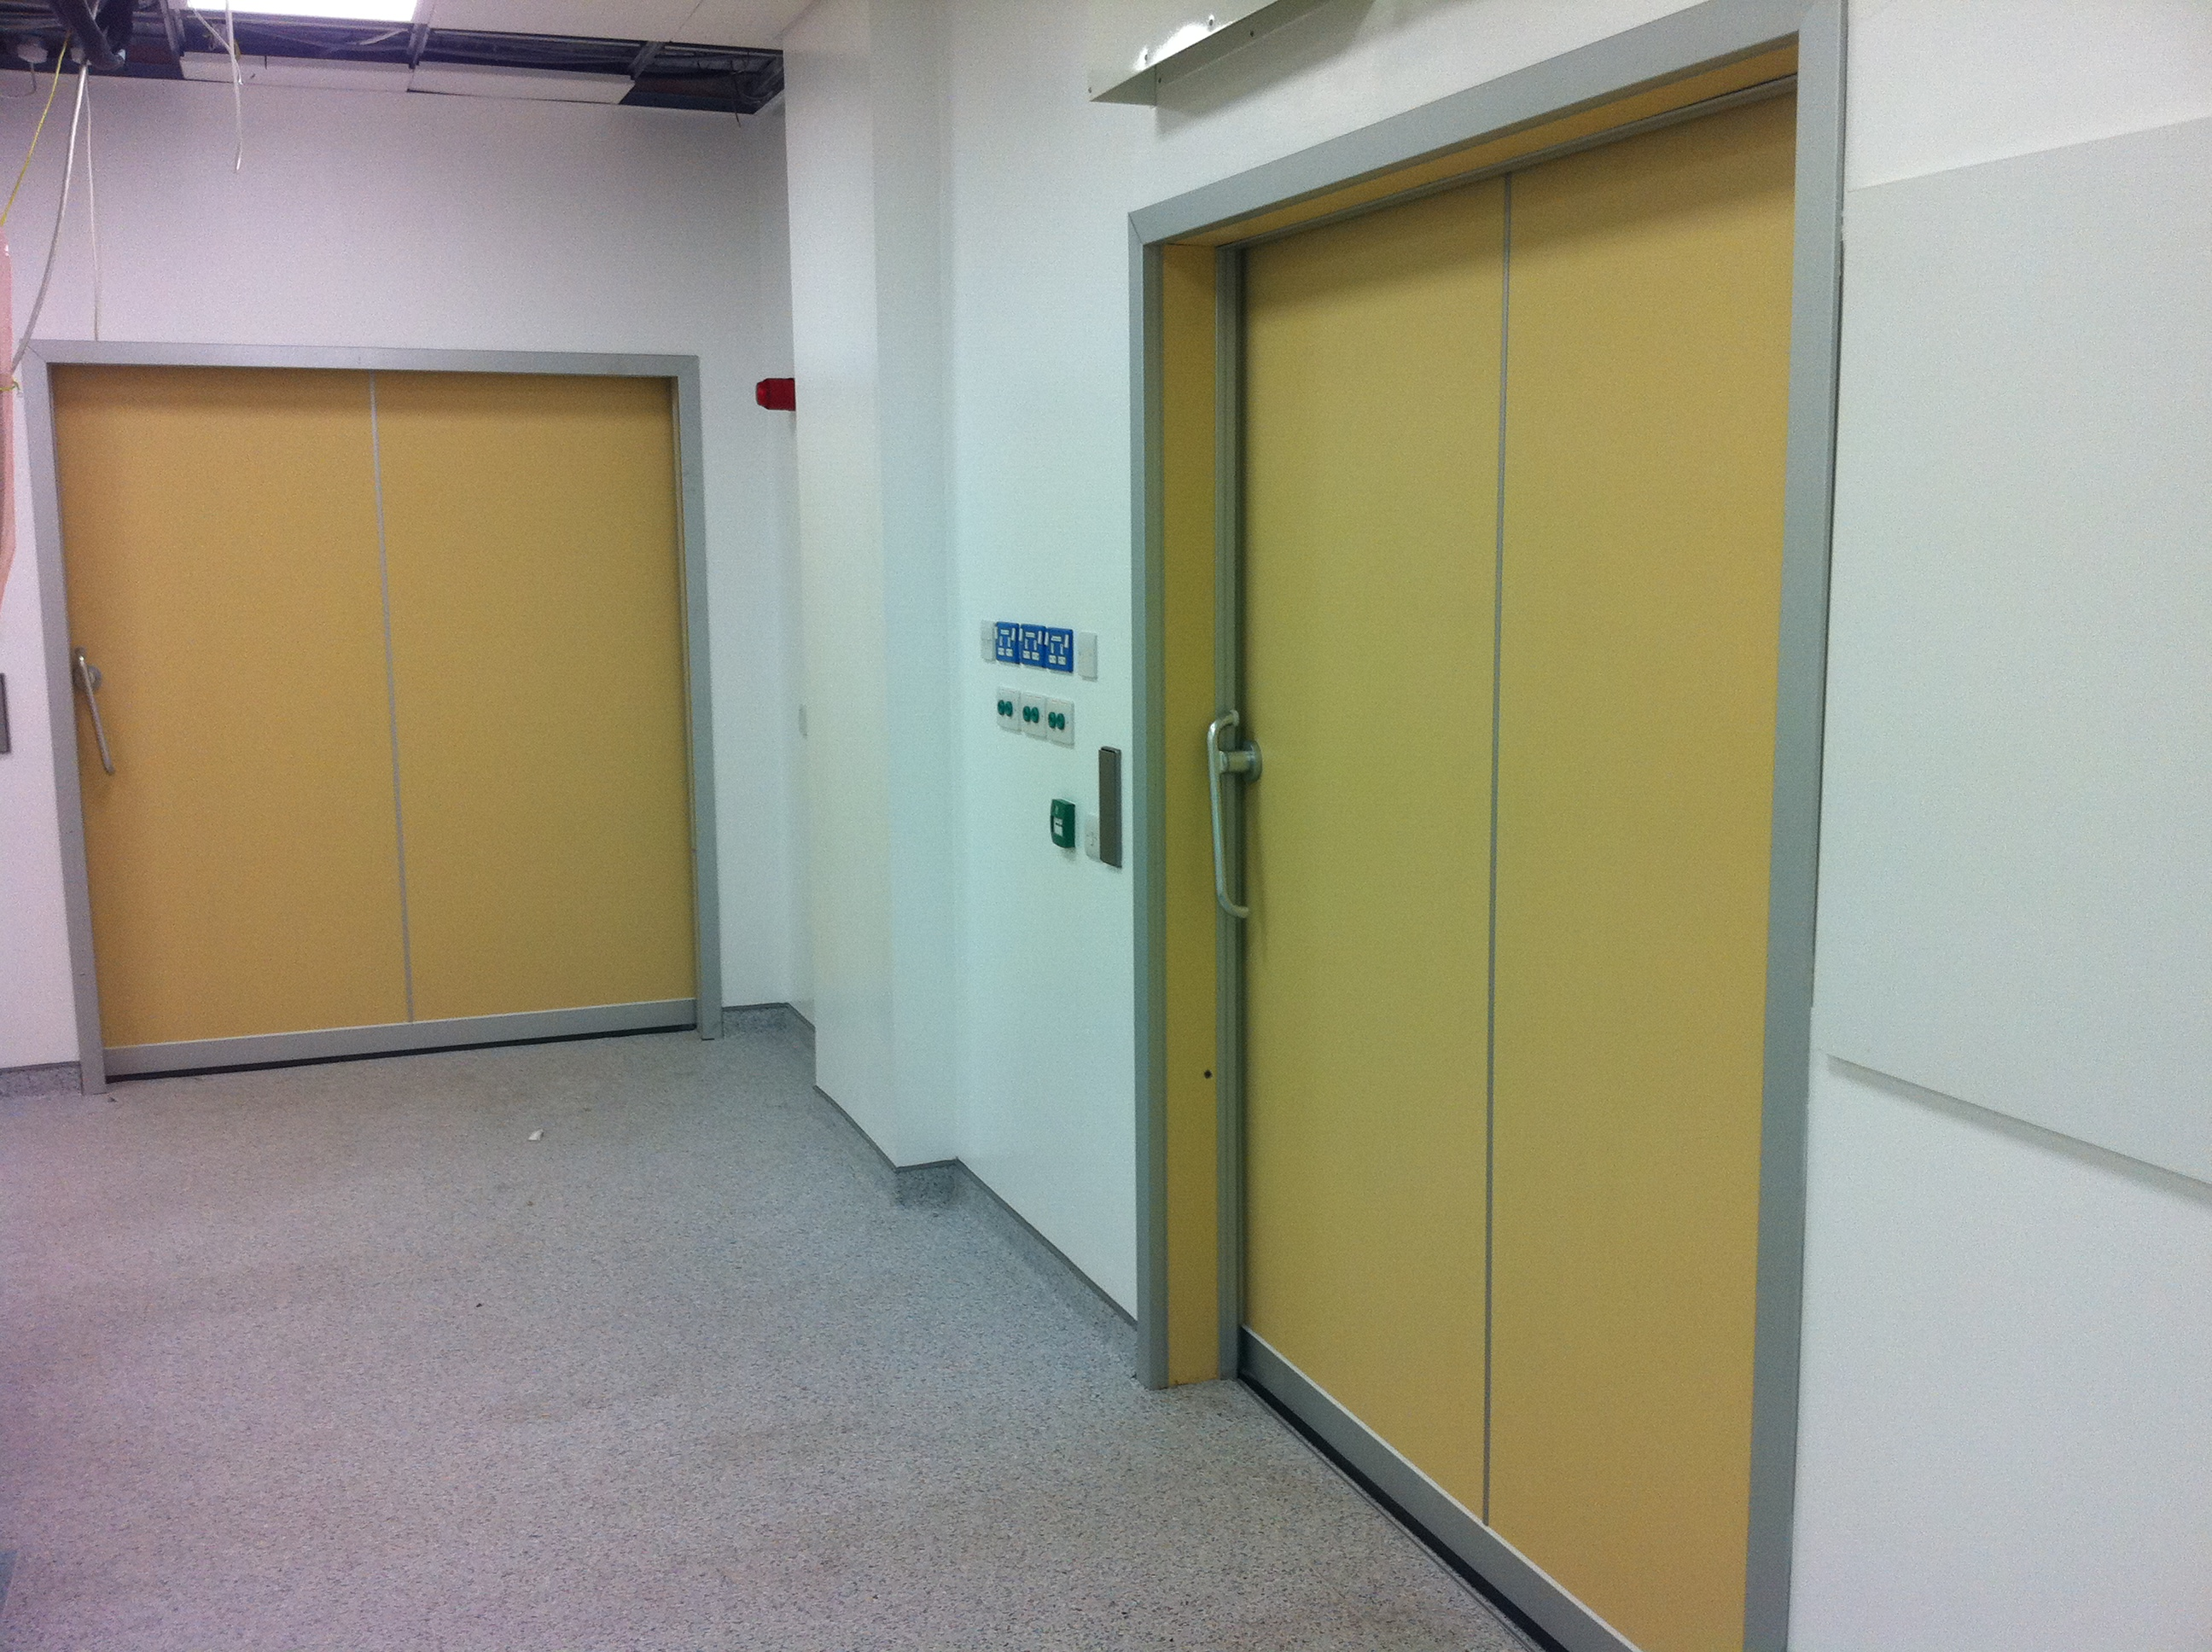 Hermetic Doors Cath Lab Dublin